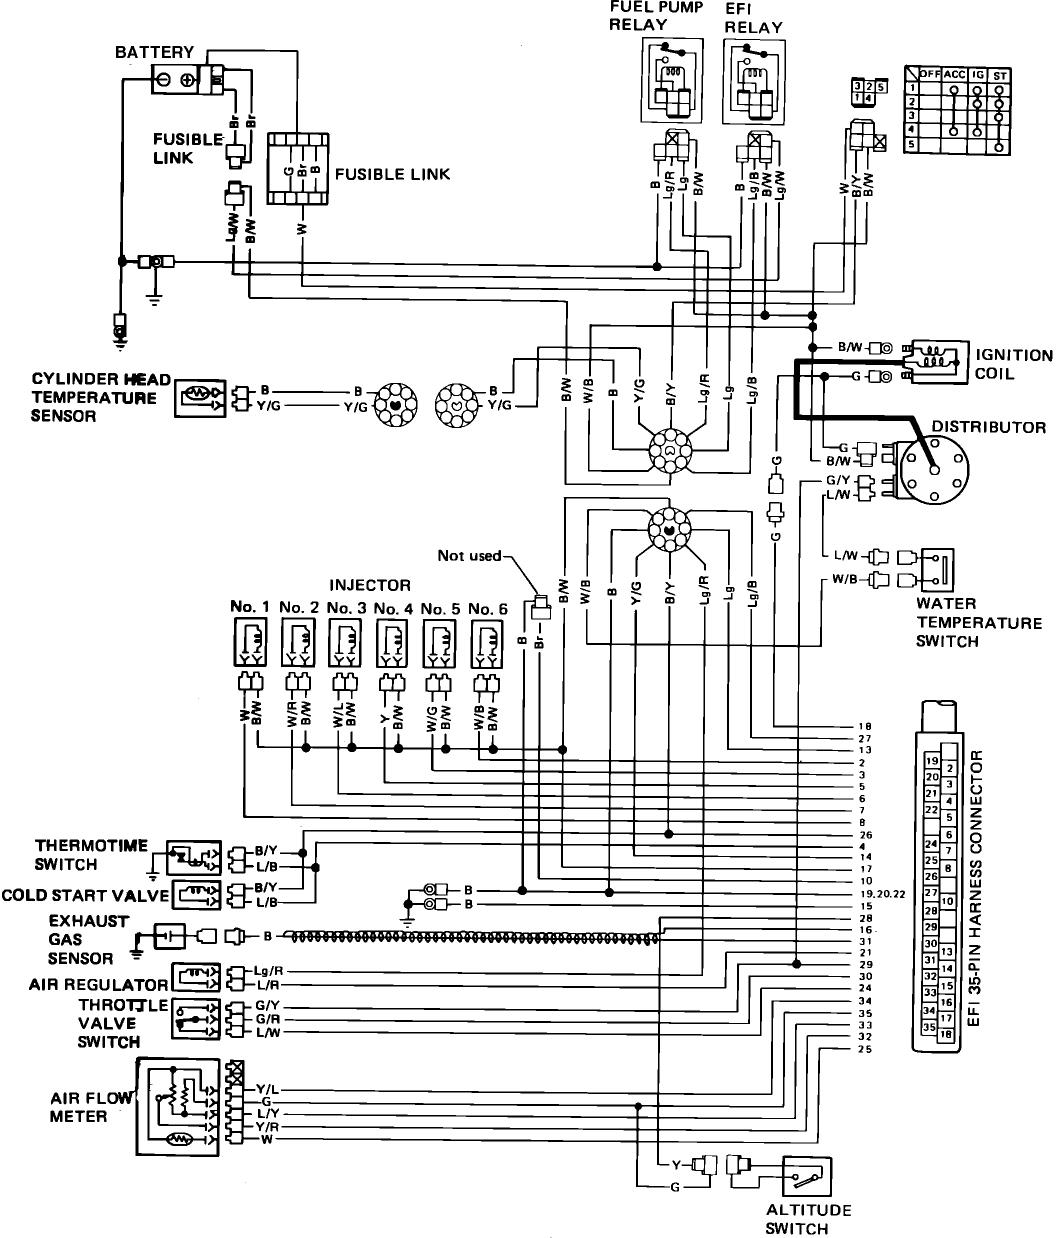 Nissan Vq25 Wiring Diagram Auto Electrical Gallery I Have A 1982 Maxima Fuel Injected 6 Cylinder Turn